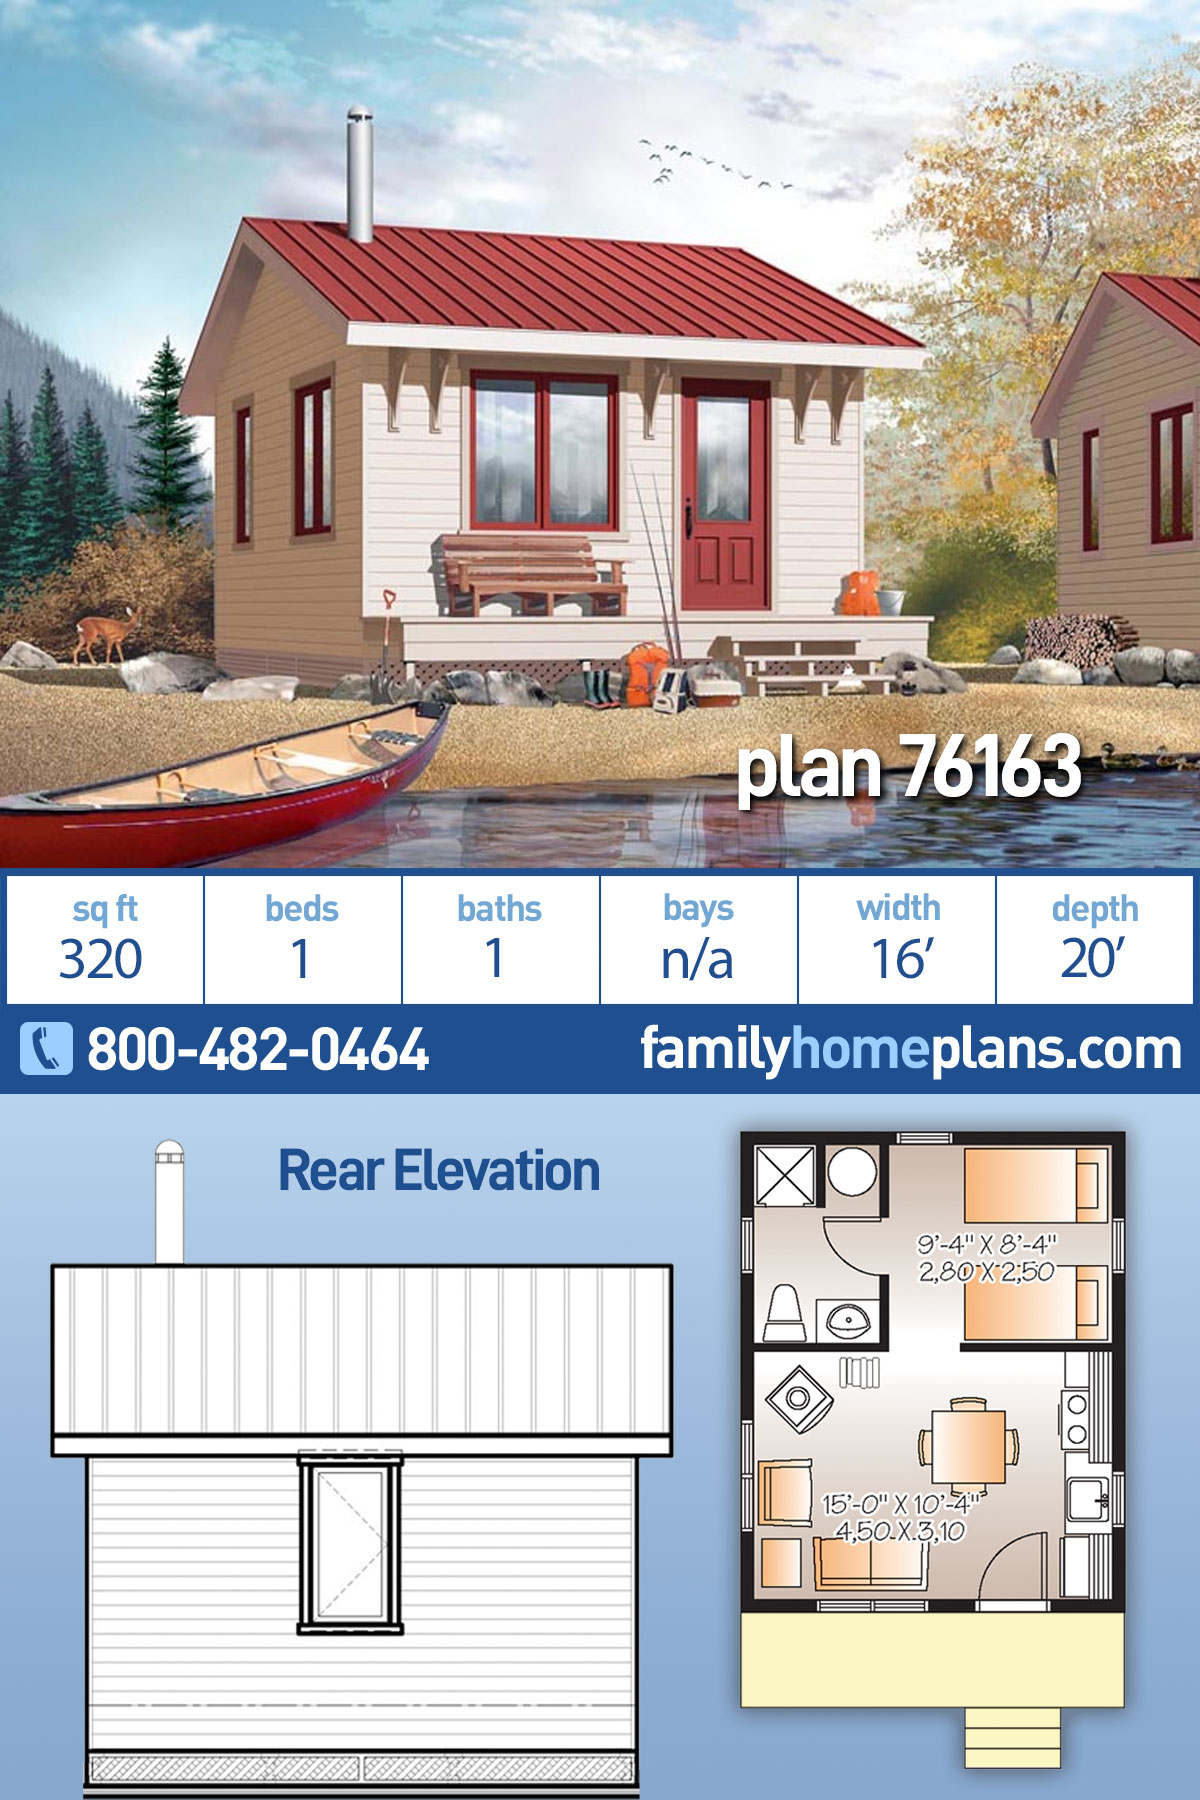 Cabin House Plan 76163 with 1 Beds, 1 Baths